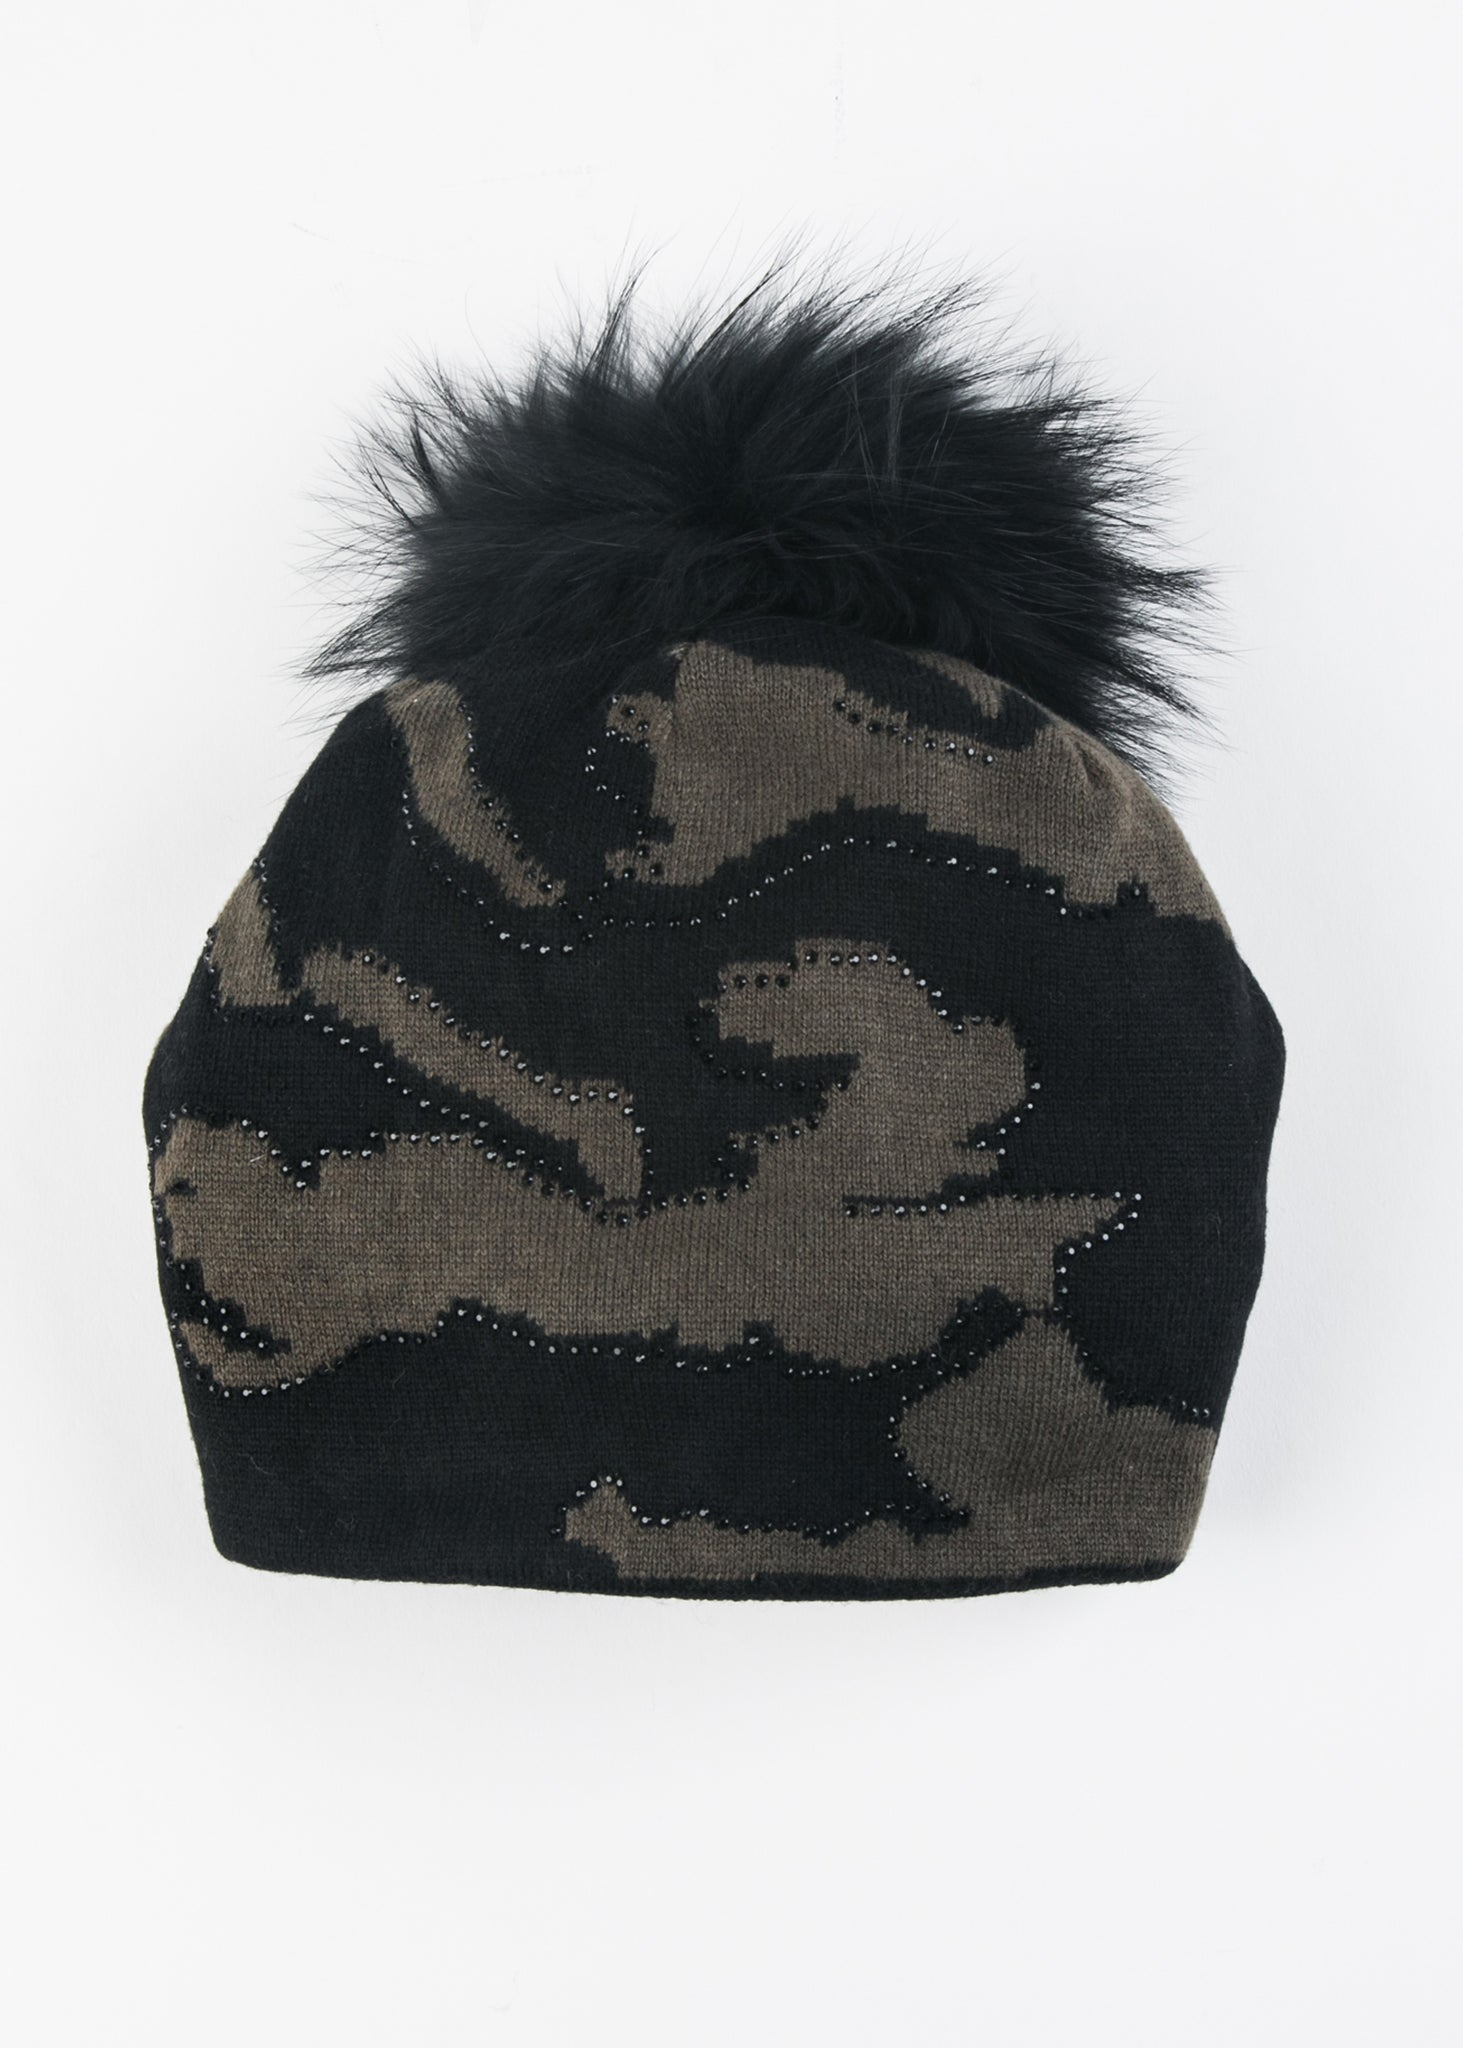 Knit Camo Beanie With Crystals